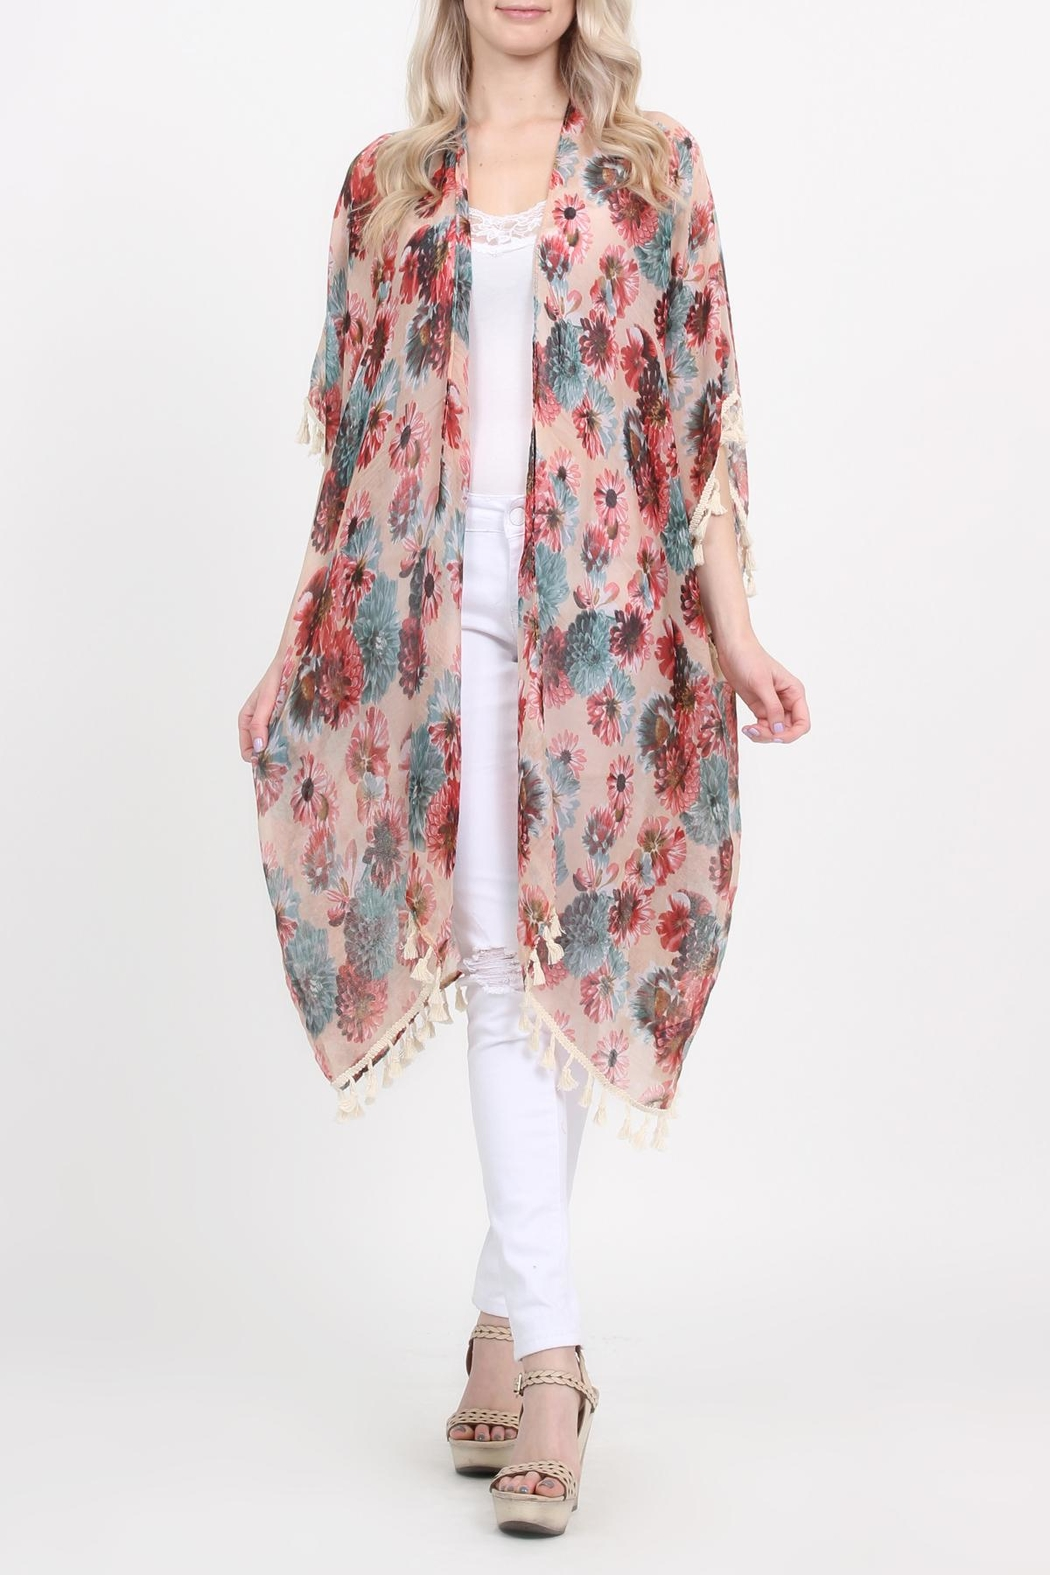 Riah Fashion Floral-Print Semi-Sheer Tassel-Cardigan - Main Image